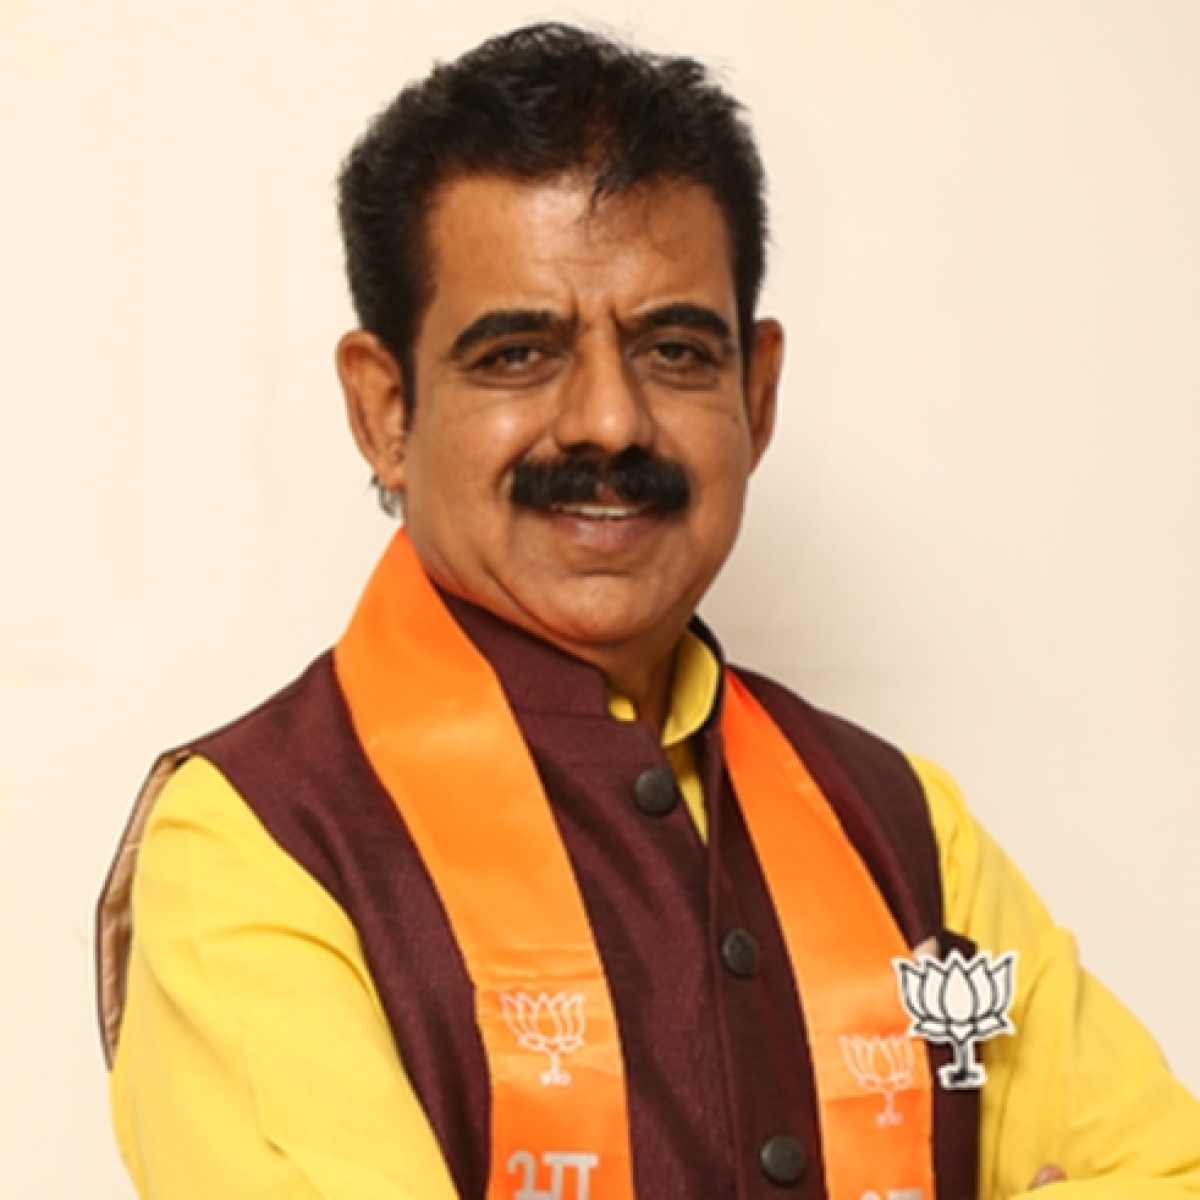 BJP MP Shankar Lalwani seeks evacuation of Indore's family trapped in Qatar, meets MEA Subrahmanyam Jaishankar and Union health minister Harsh Vardhan